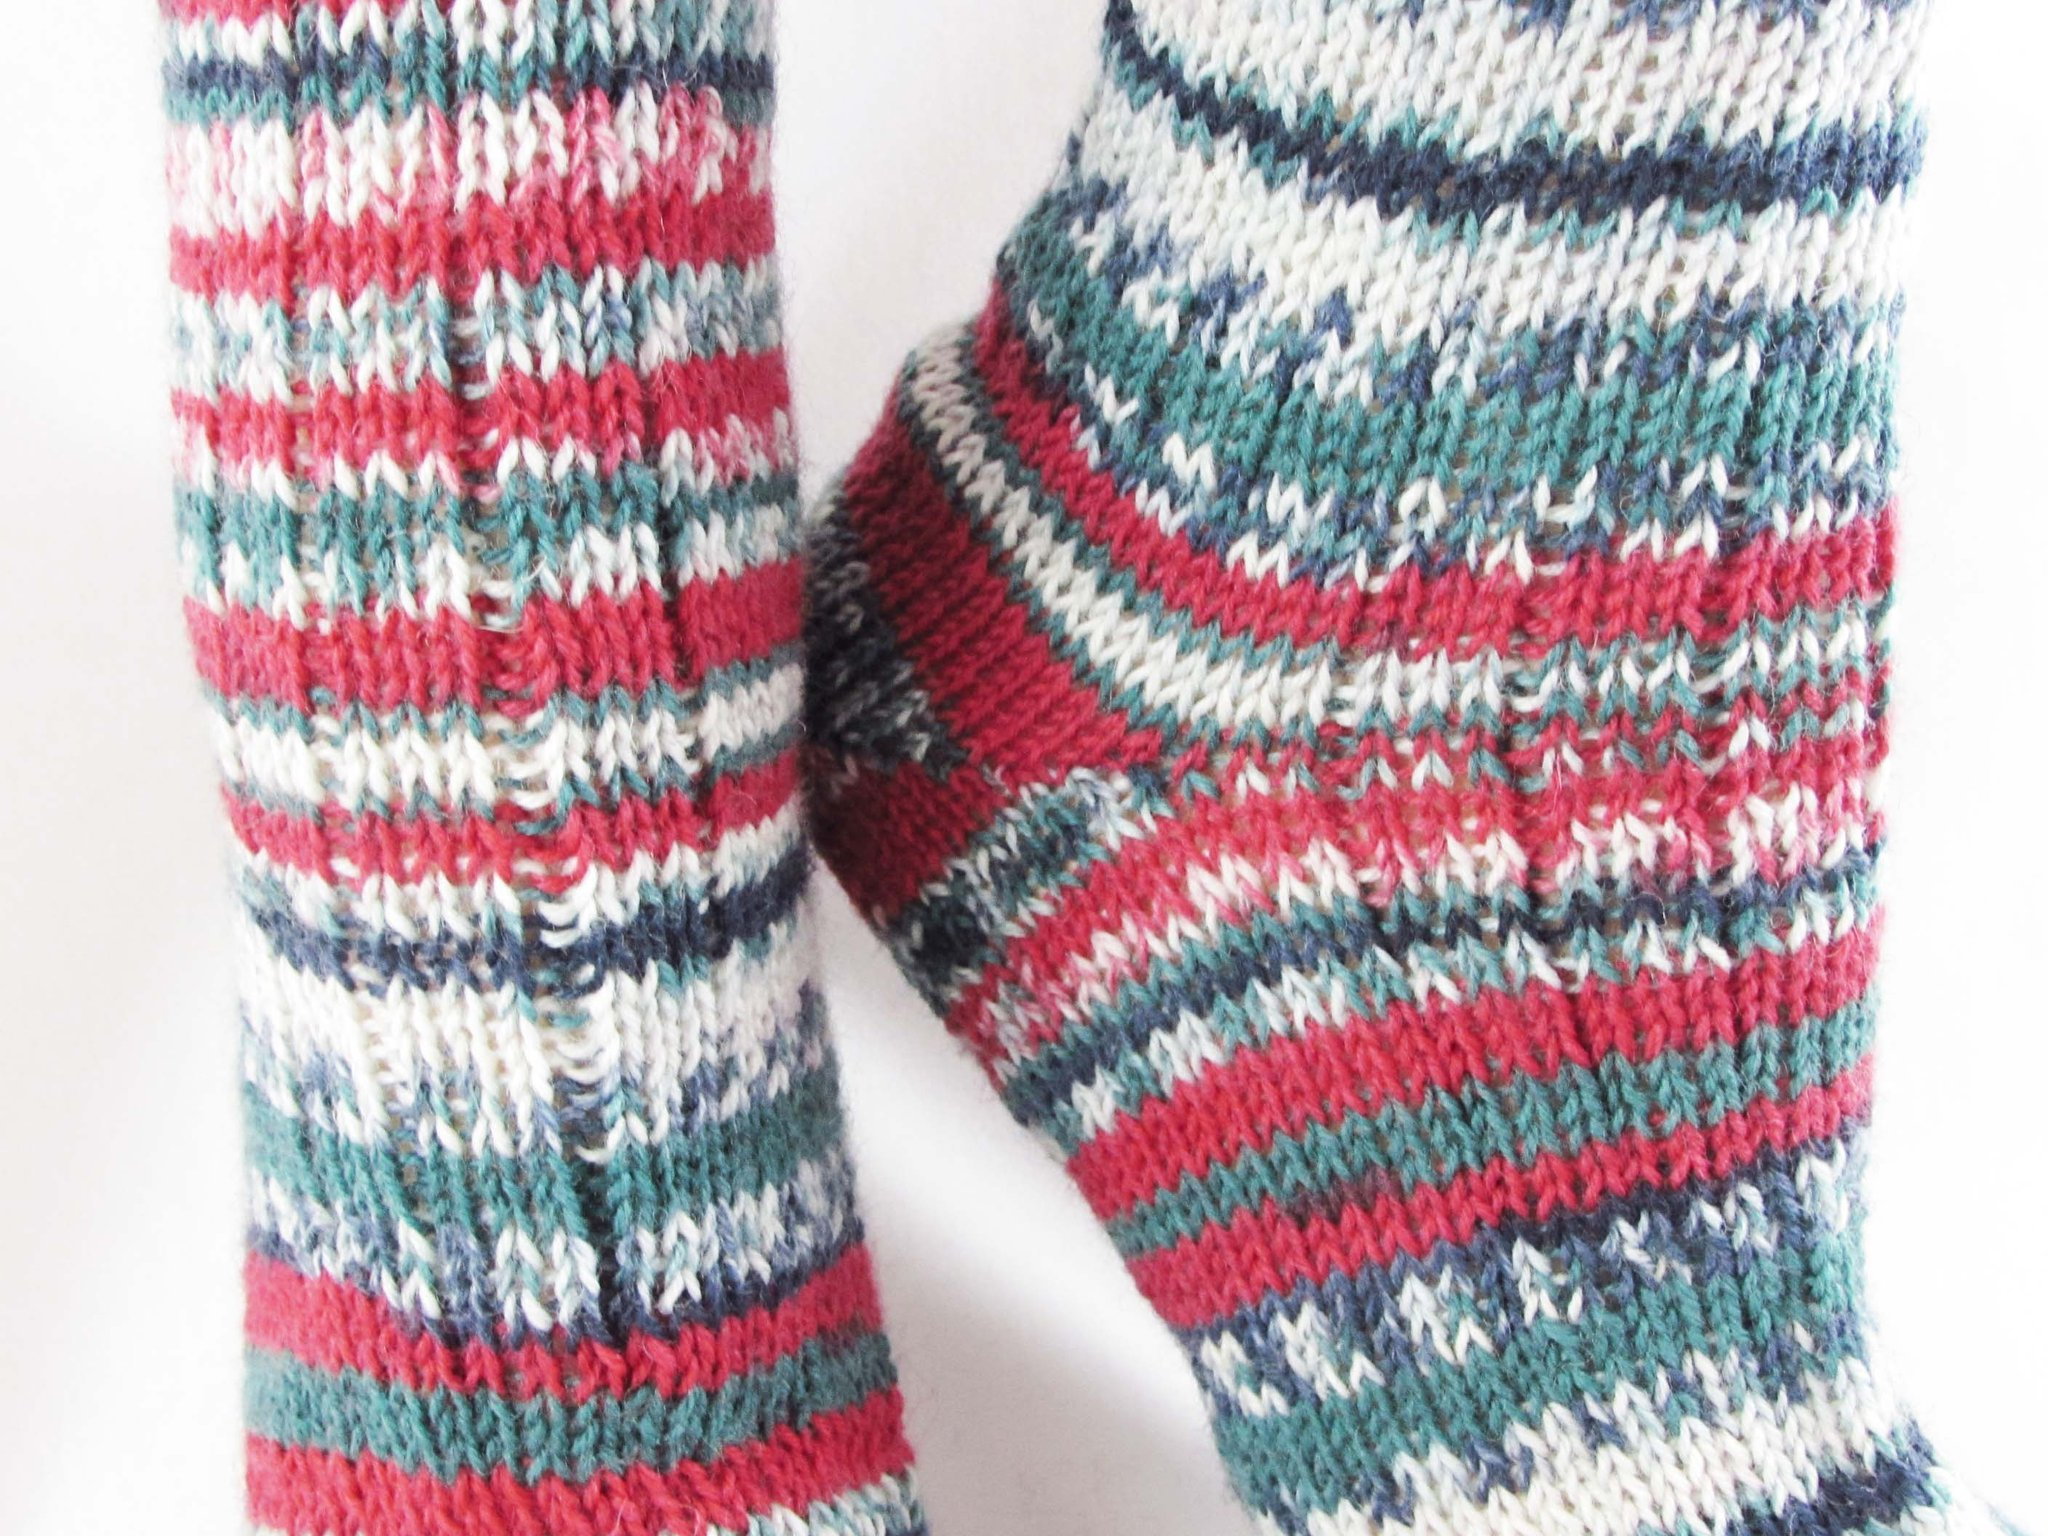 Christmas Colored Sock Yarn With Knit Wool Socks Striped Warm Winter